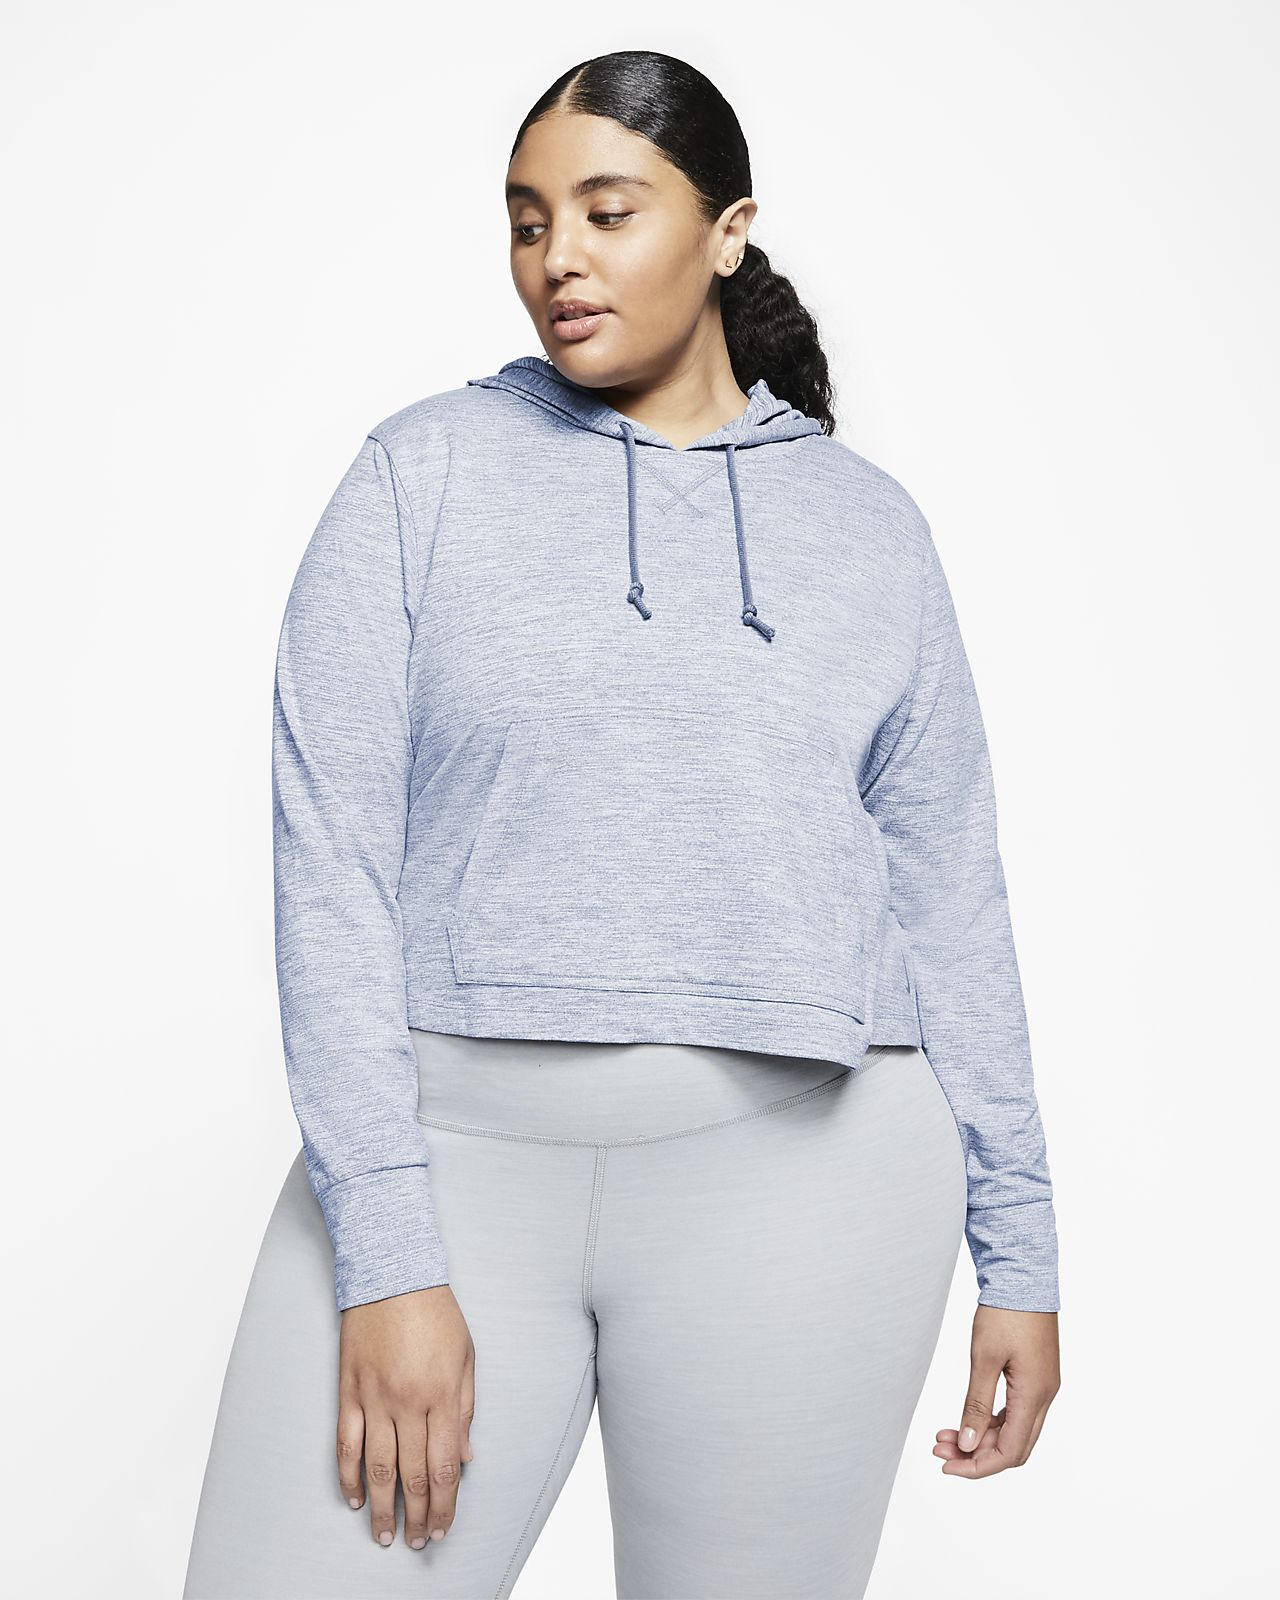 Nike Yoga Women's Cropped Hoodie (Plus Size)